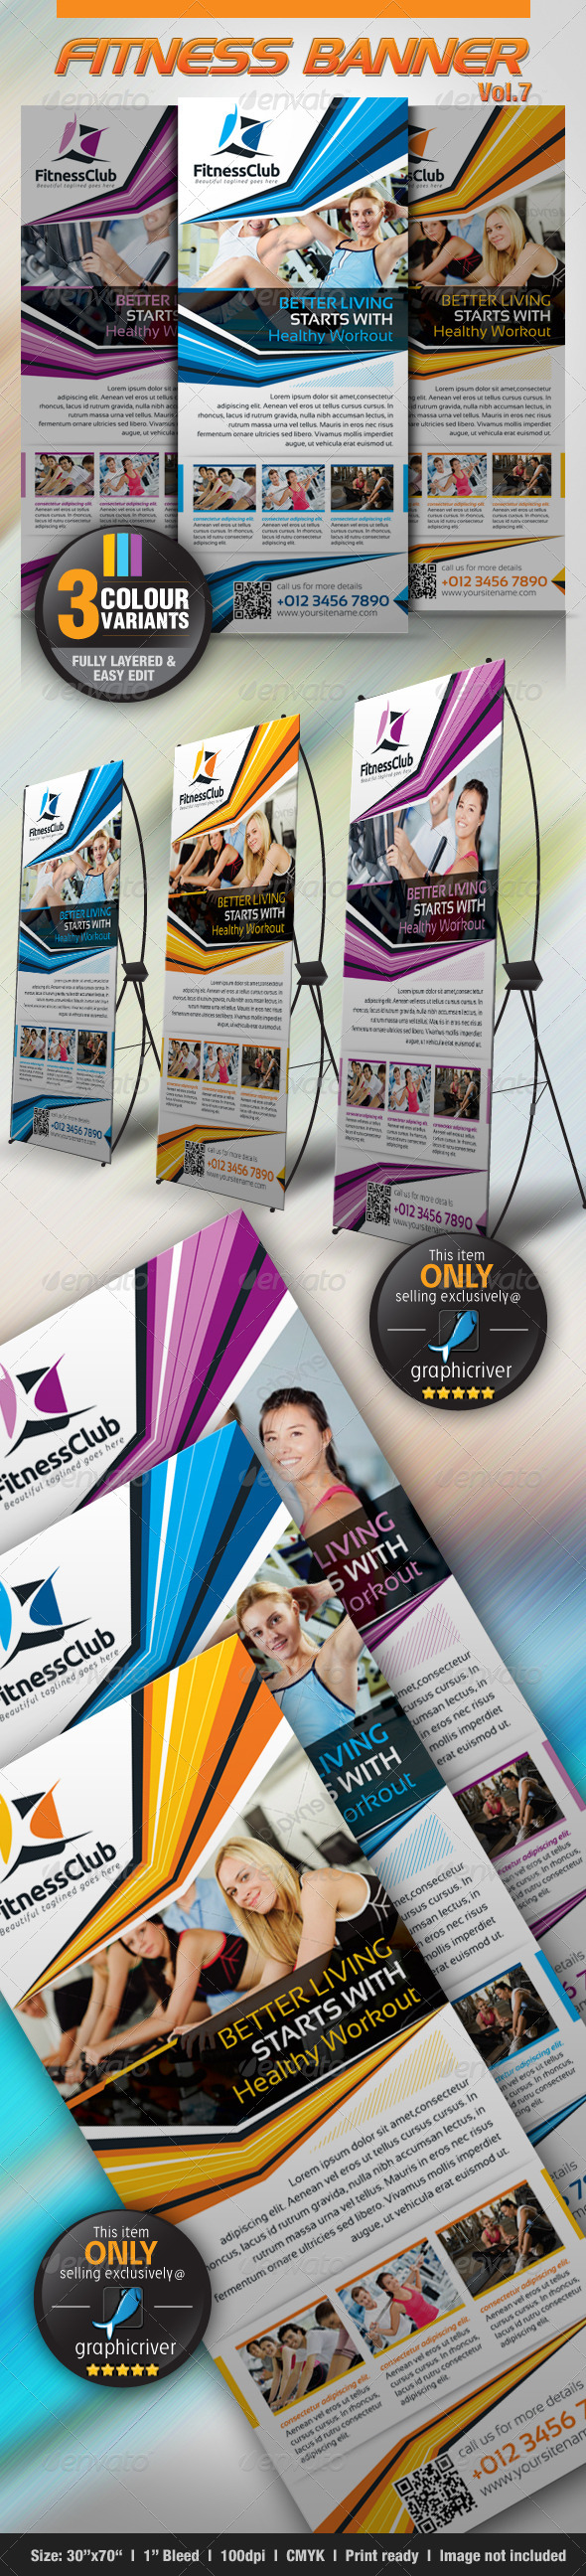 GraphicRiver Fitness Banner Vol.7 4589711